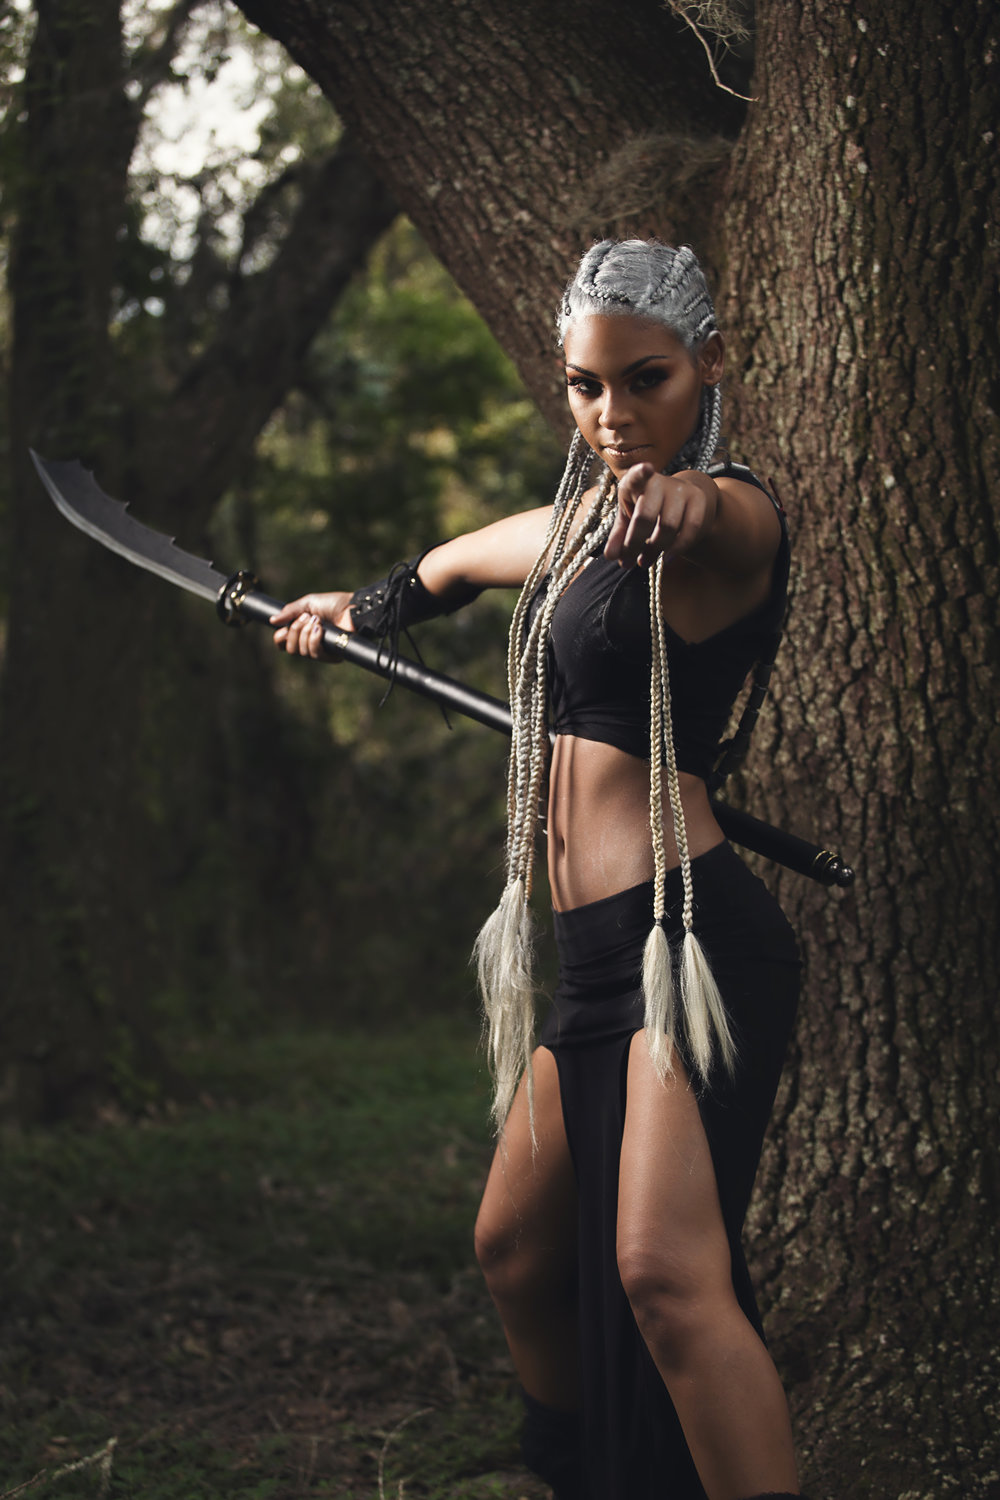 character-chamber-photography-warrior-female13.jpg